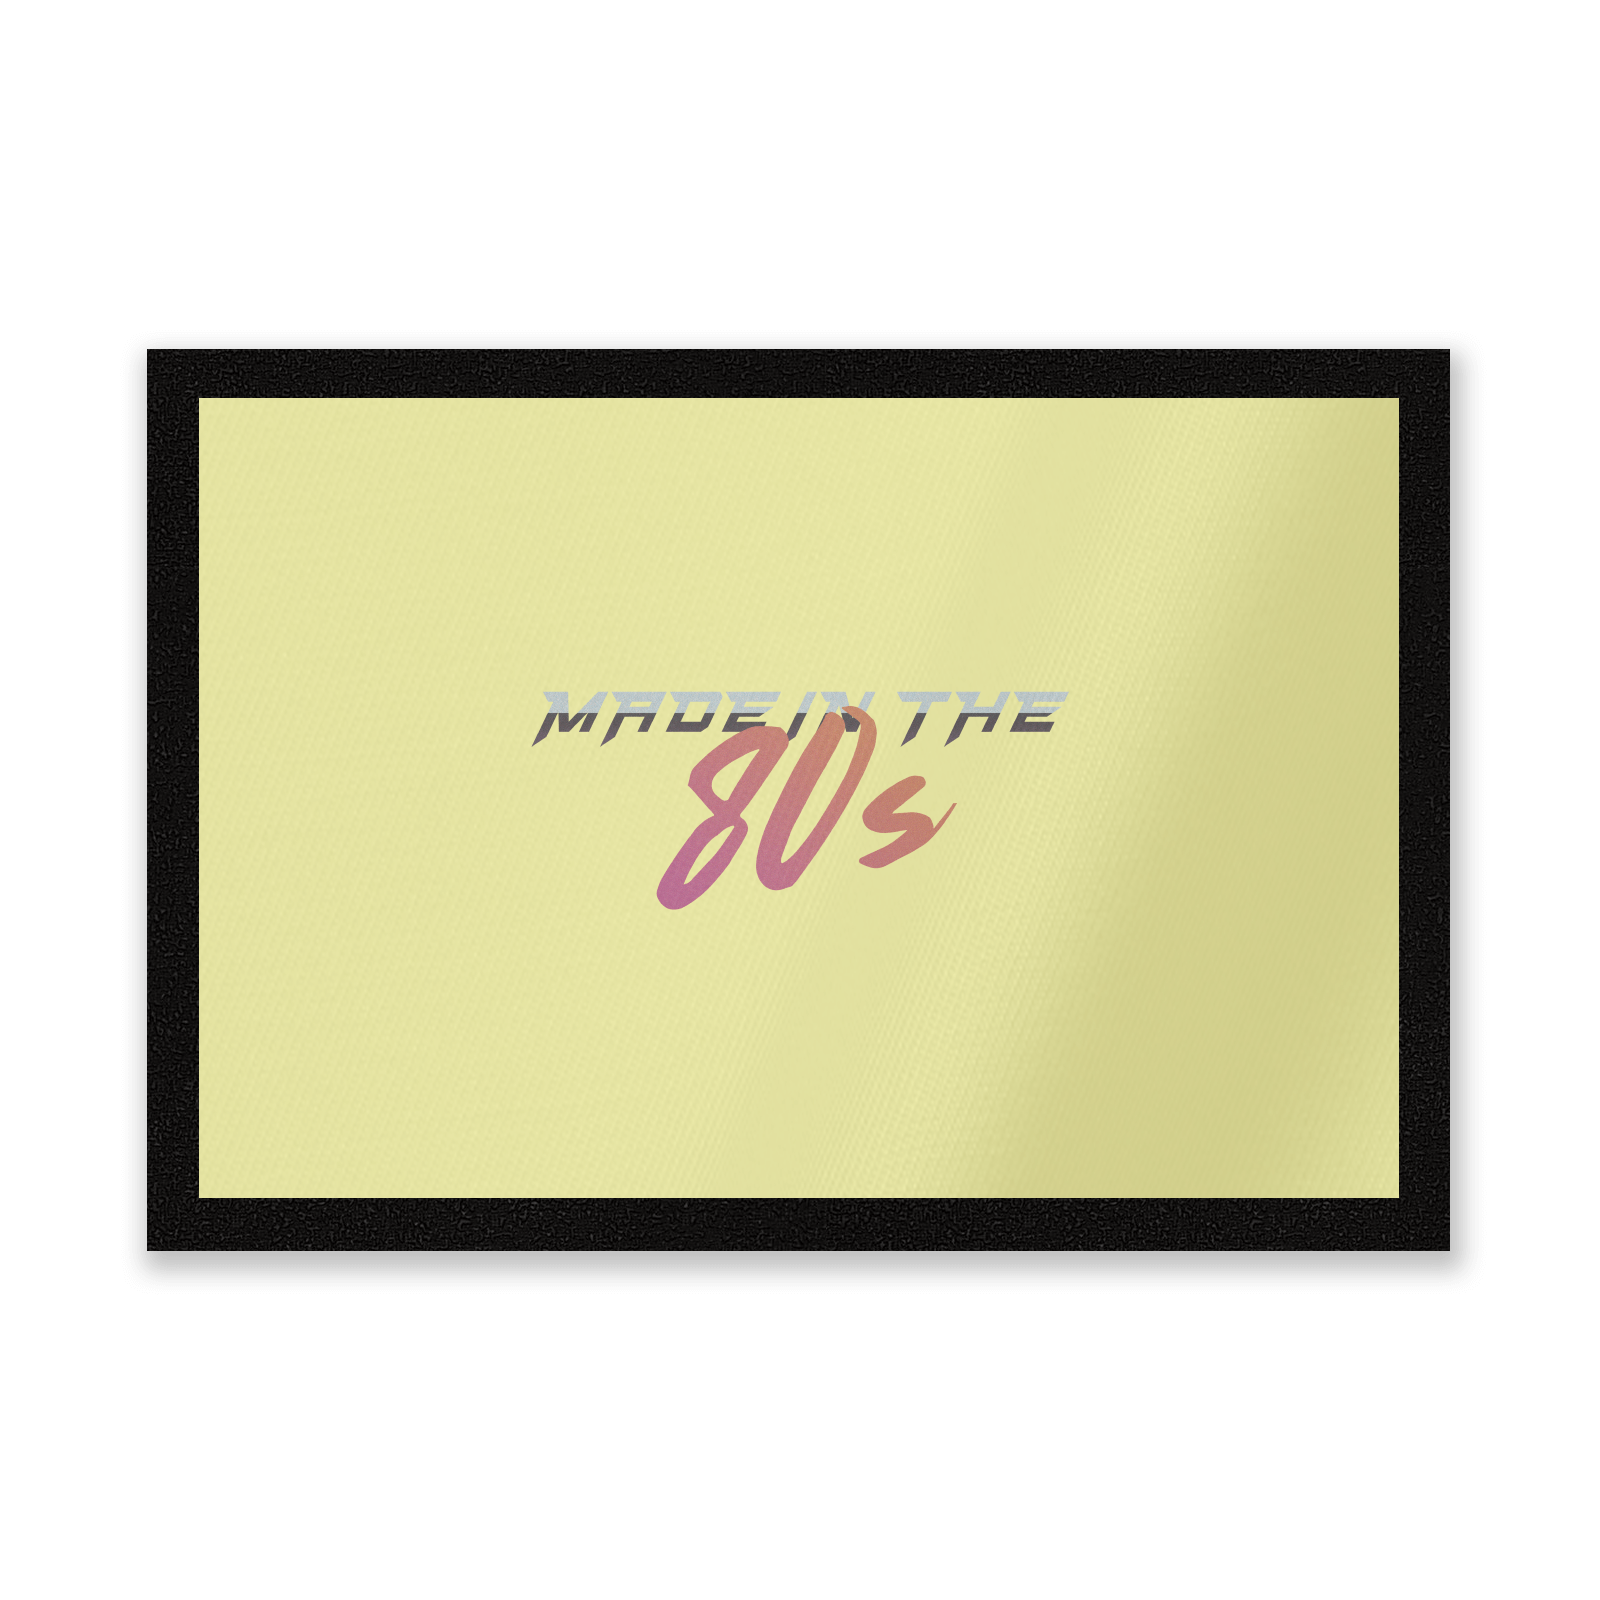 Made In The 80s Gradient Entrance Mat